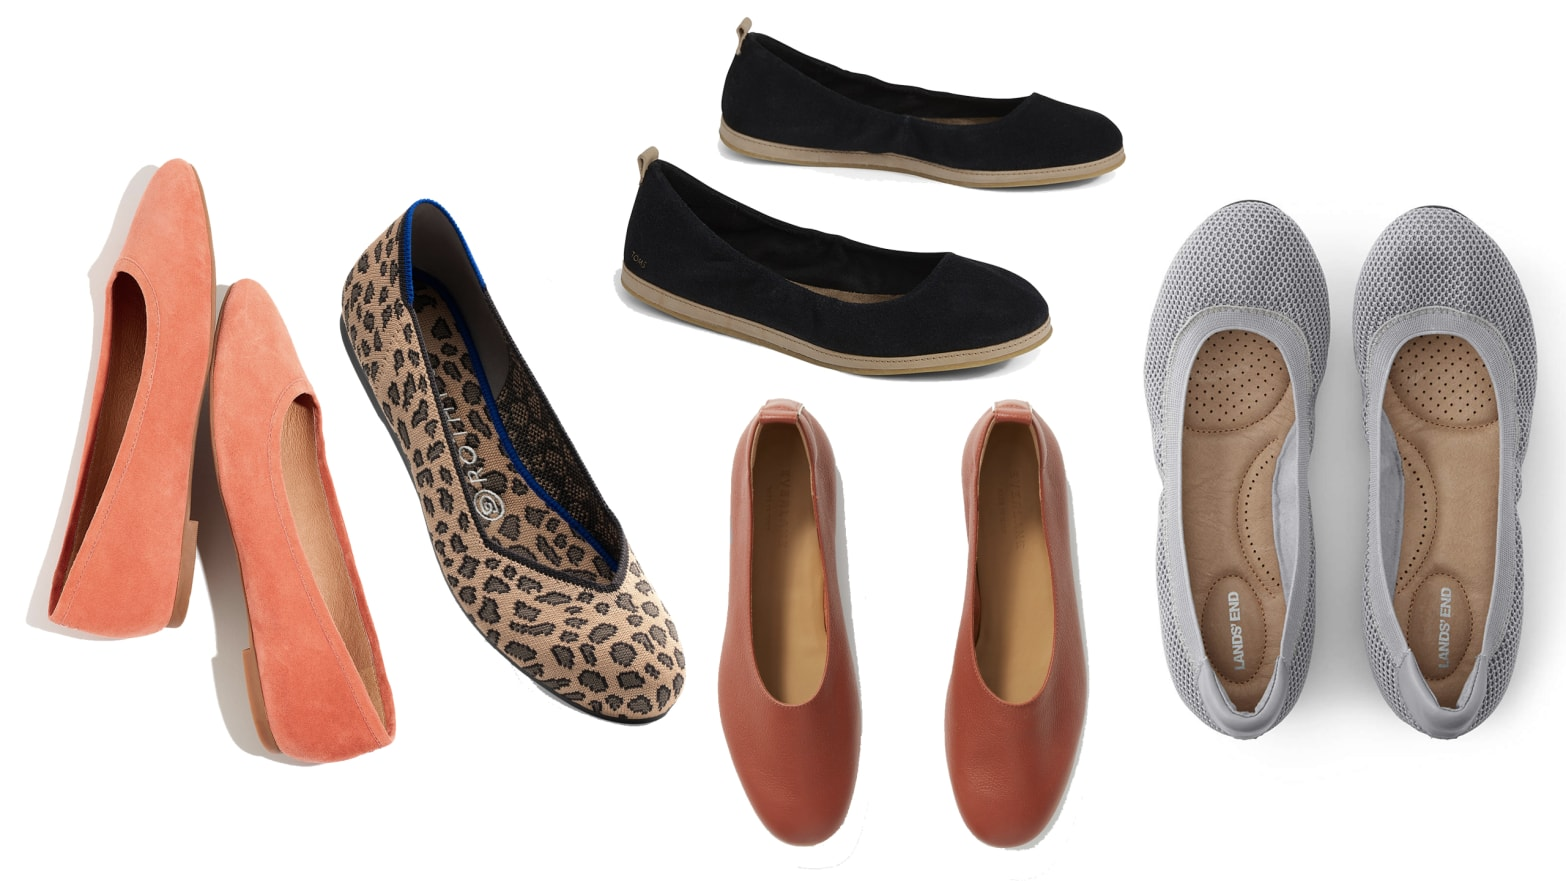 Comfortable Flats from Rothy's, Madewell, Everlane, and More